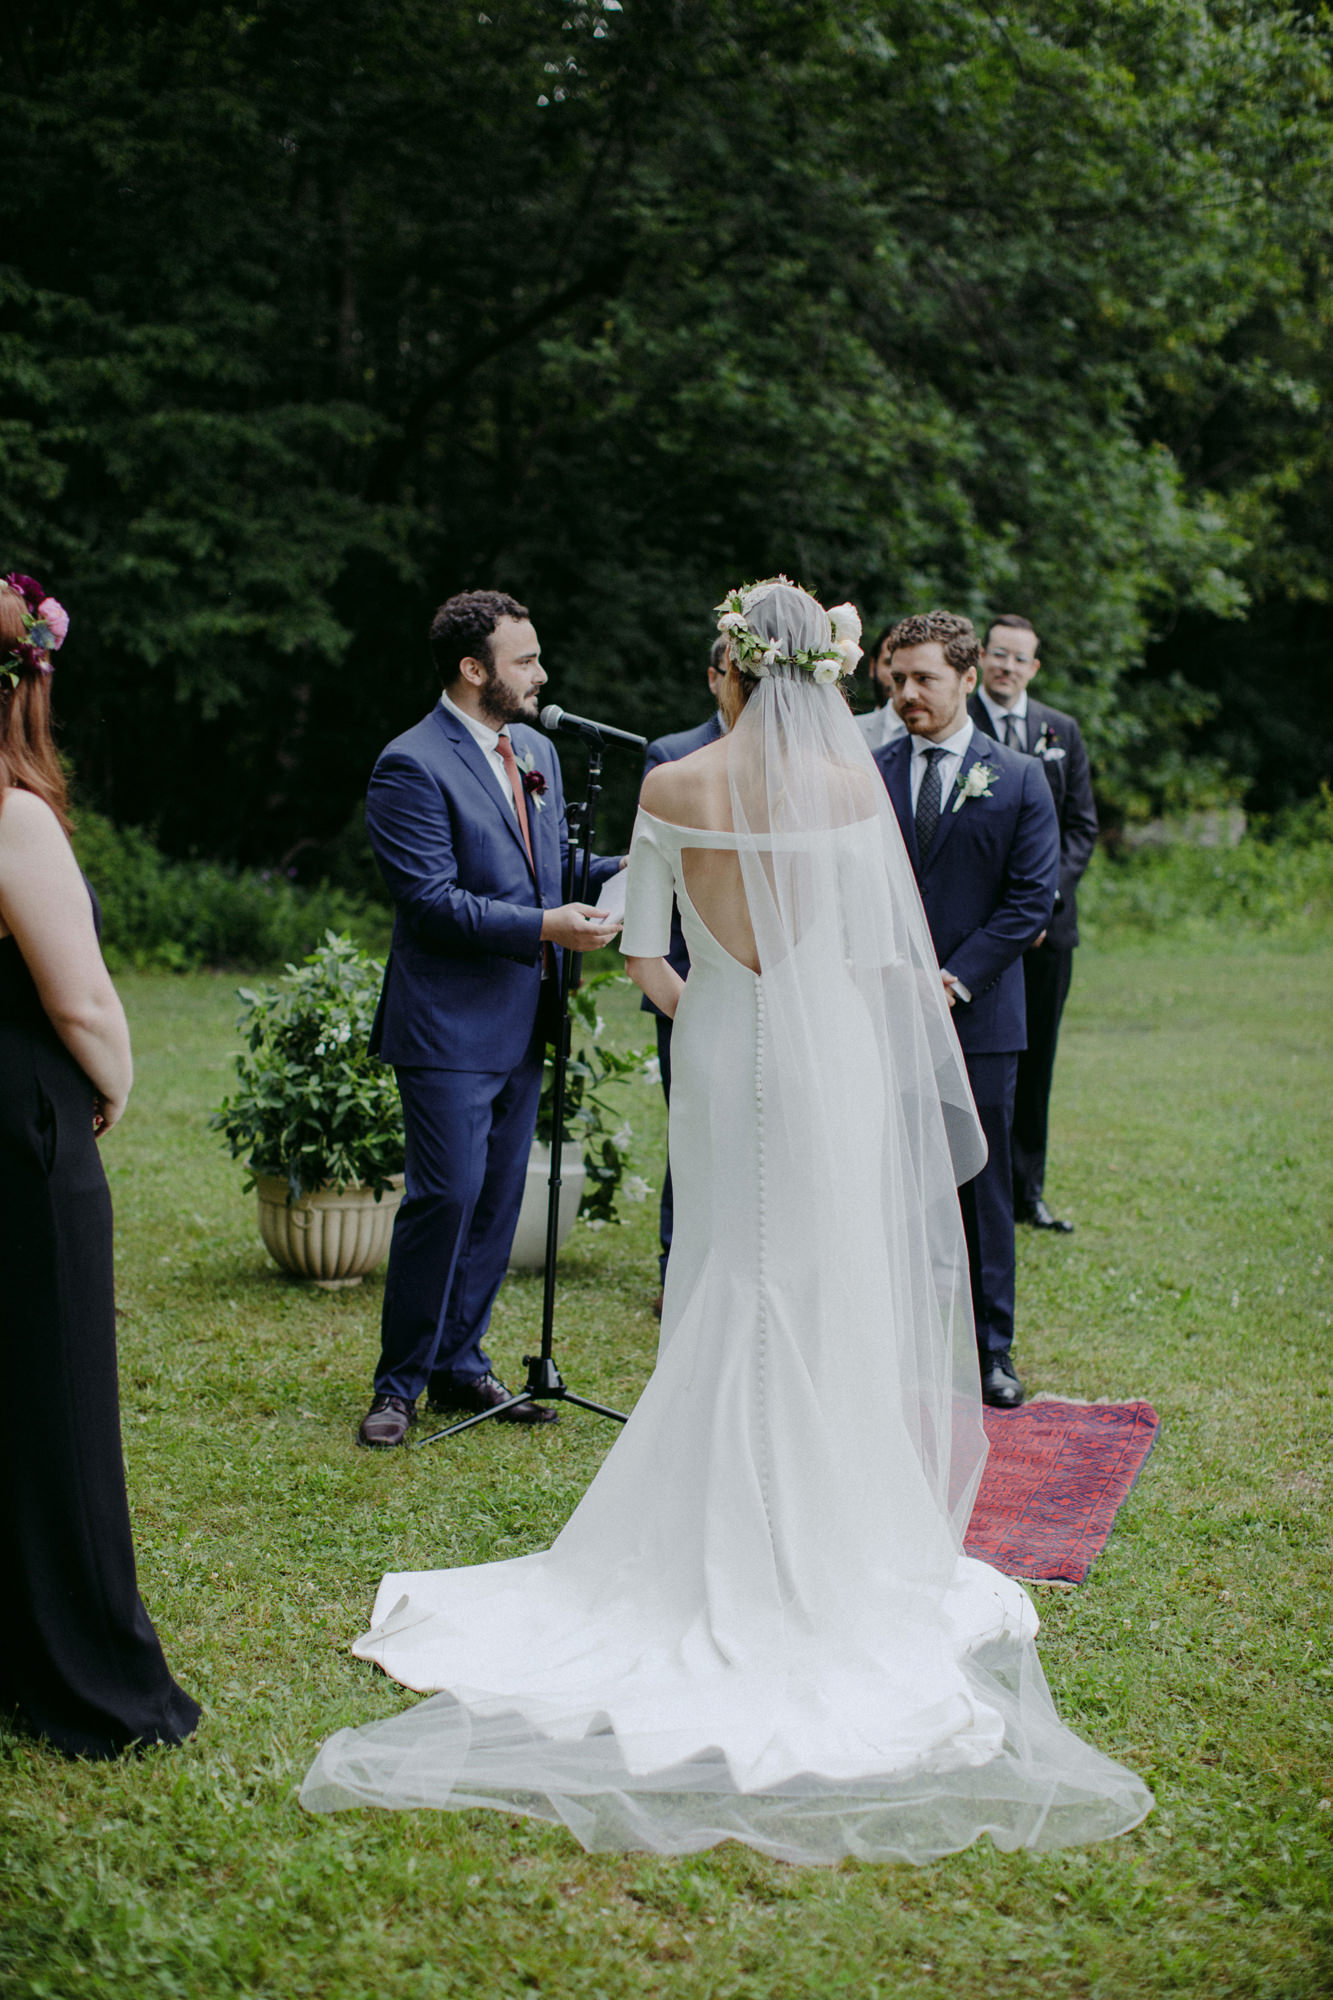 FOXFIREMOUNTAINHOUSE_CATSKILLS_WEDDING_SAMMBLAKE_PJW_0297.jpg